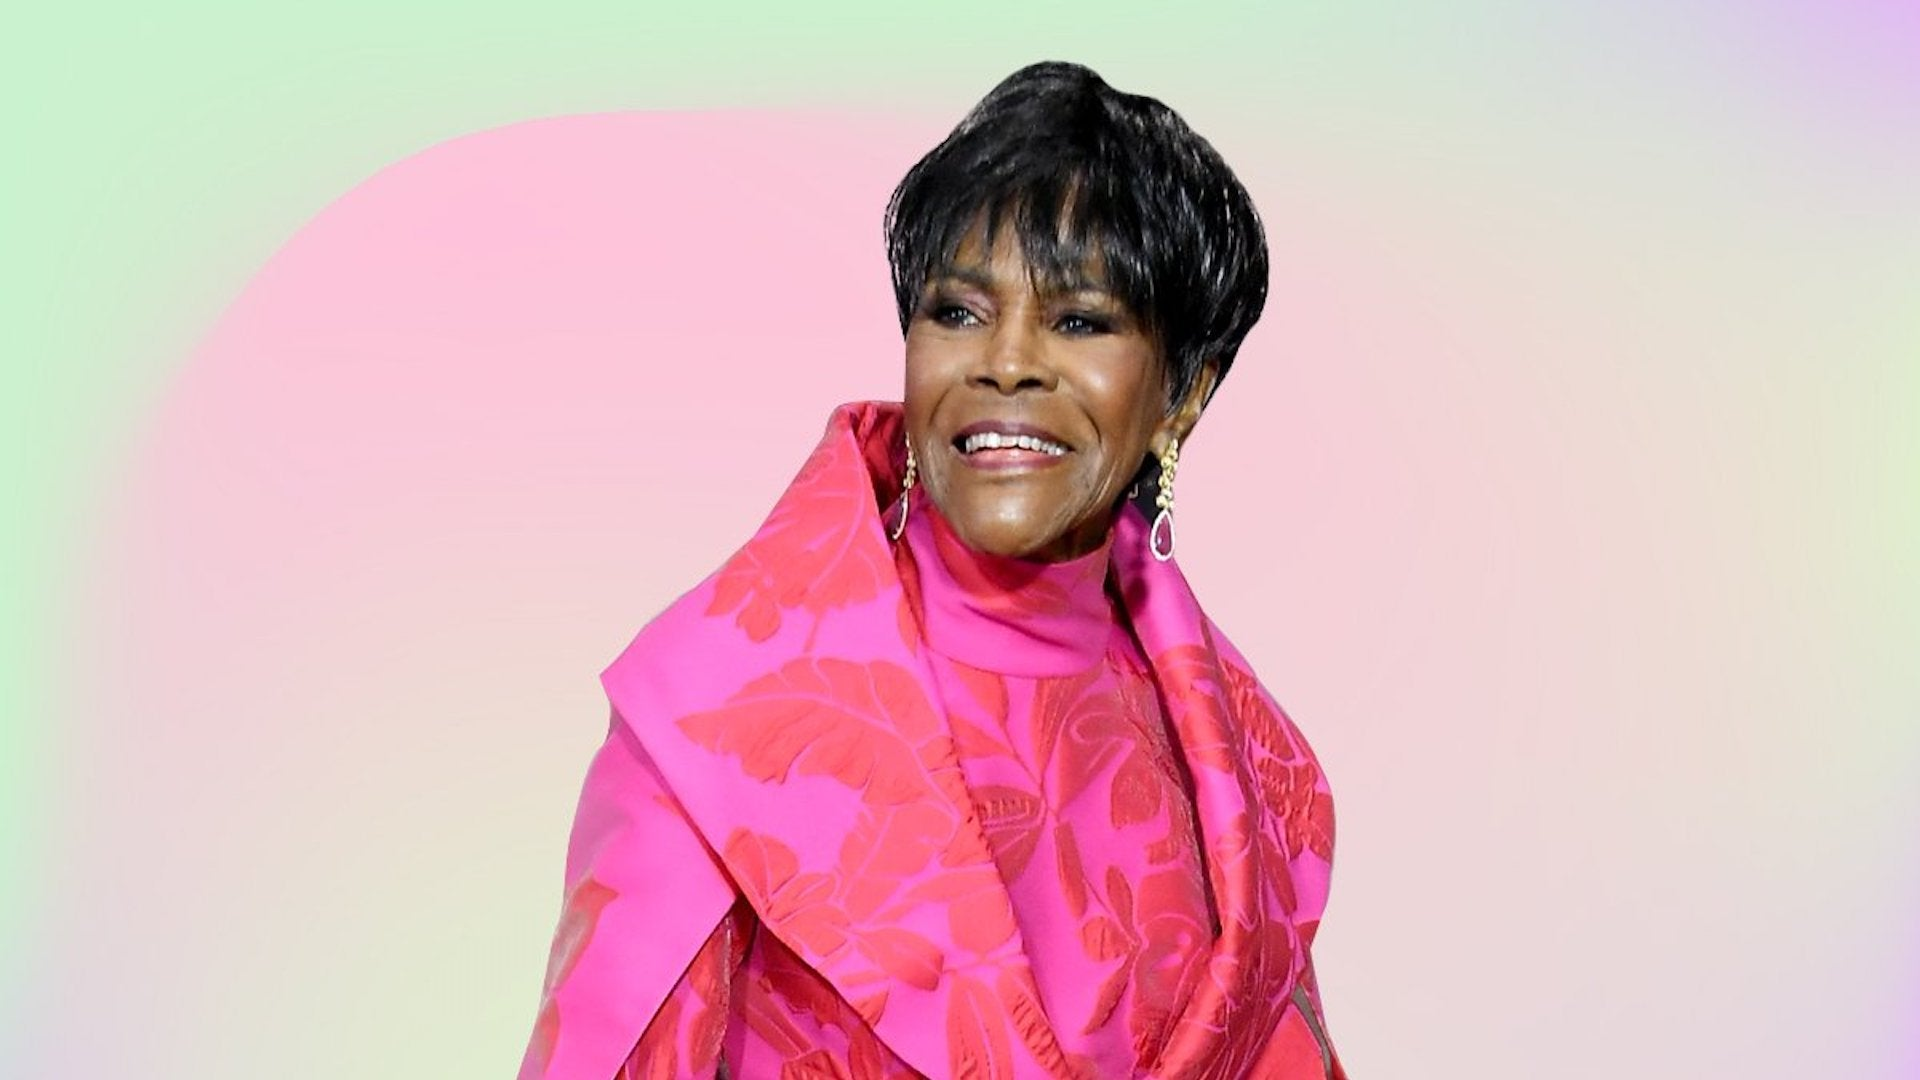 Cicely Tyson's Memoir 'Just As I Am' To Be Released In 2021